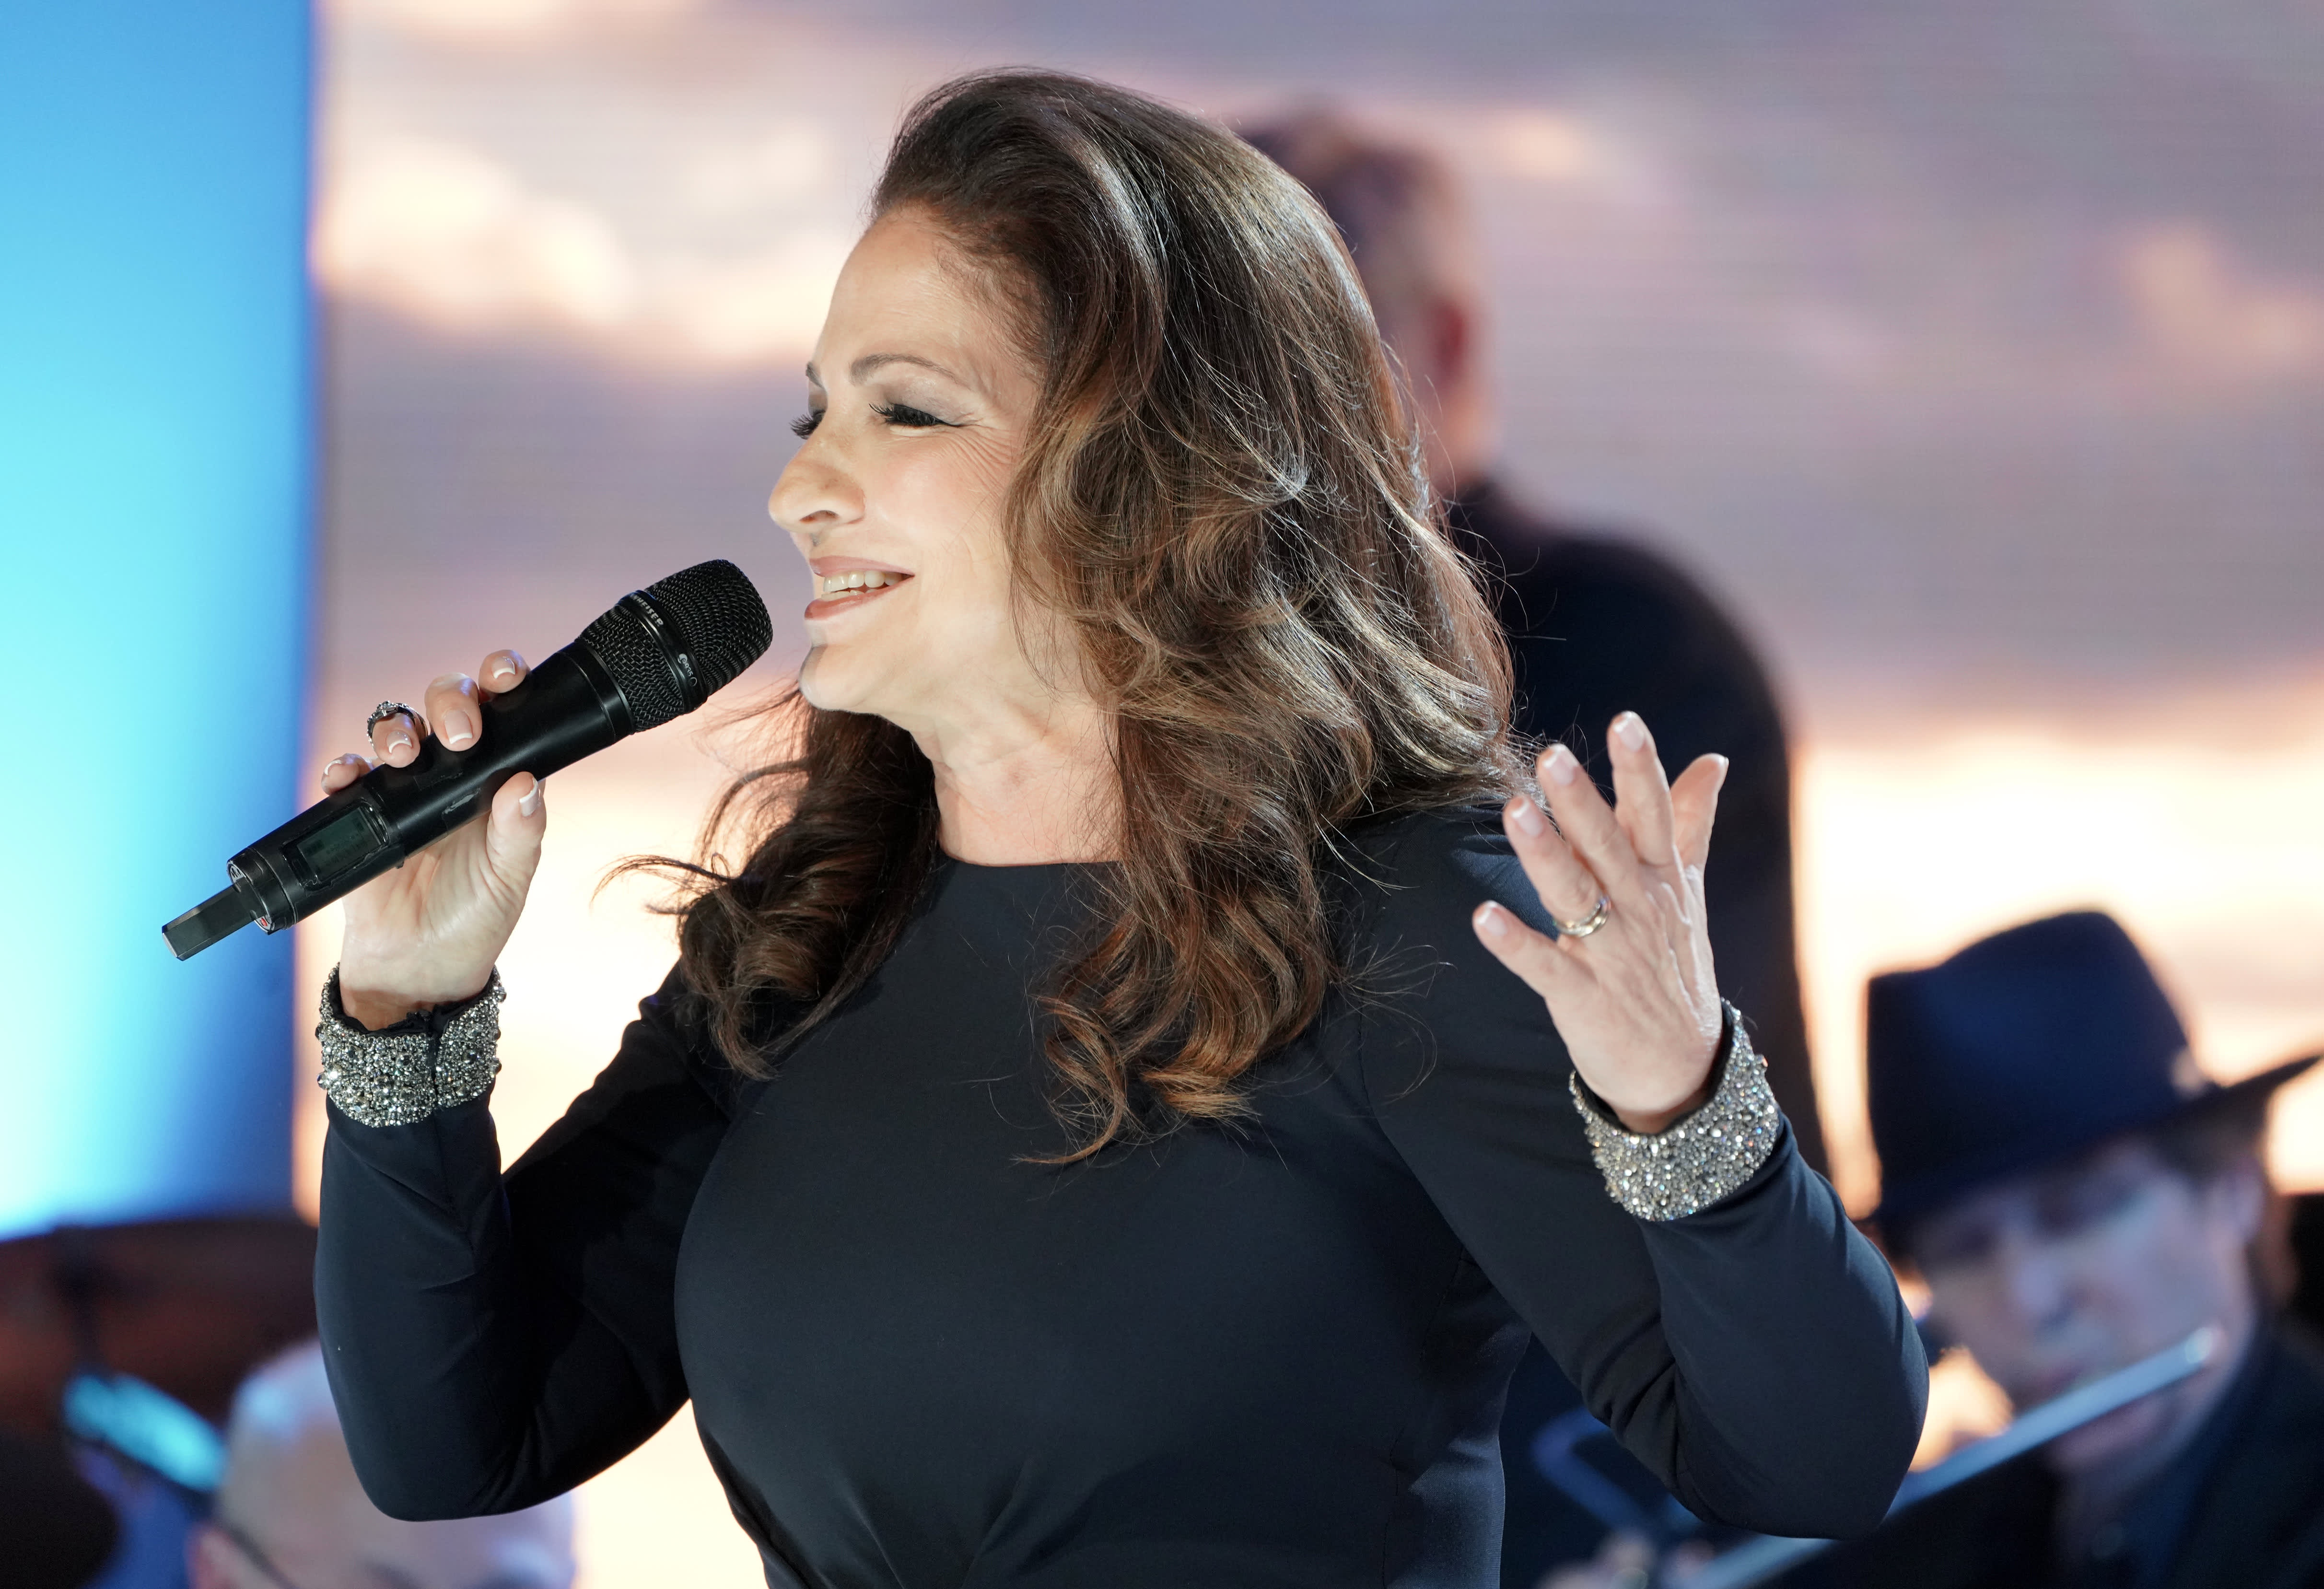 Gloria Estefan says there's a 'serious lack of leadership' in the U.S. coronavirus response